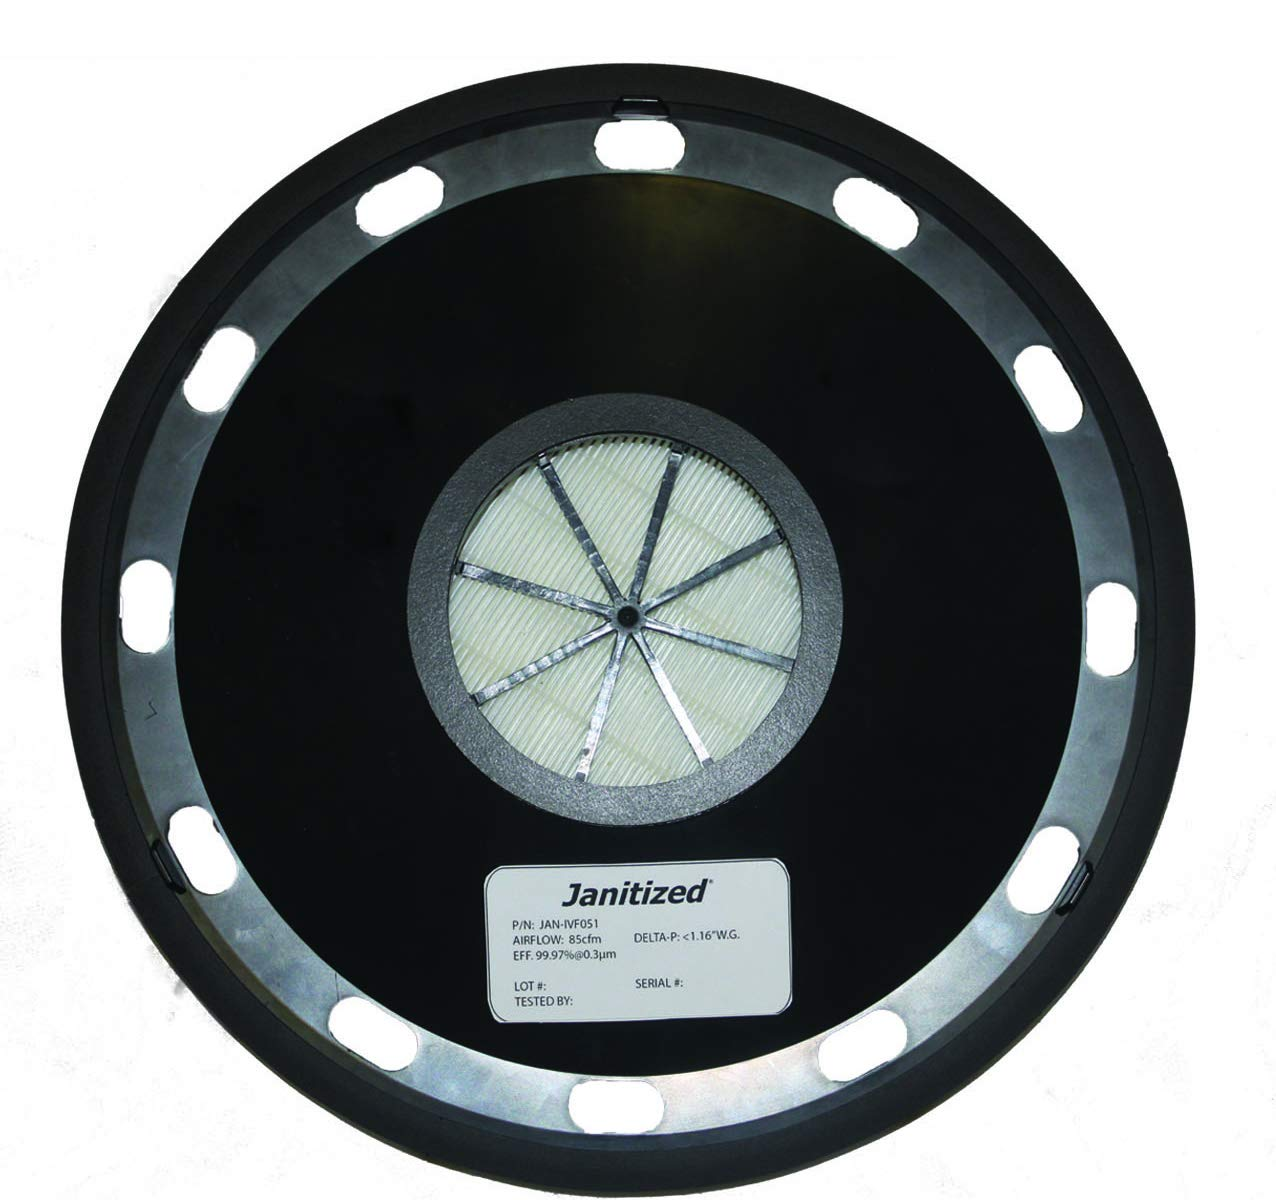 Janitized JAN-IVF051 Pullman Holt 390ASB and Euro 930 Premium Replacement Commercial HEPA Filter